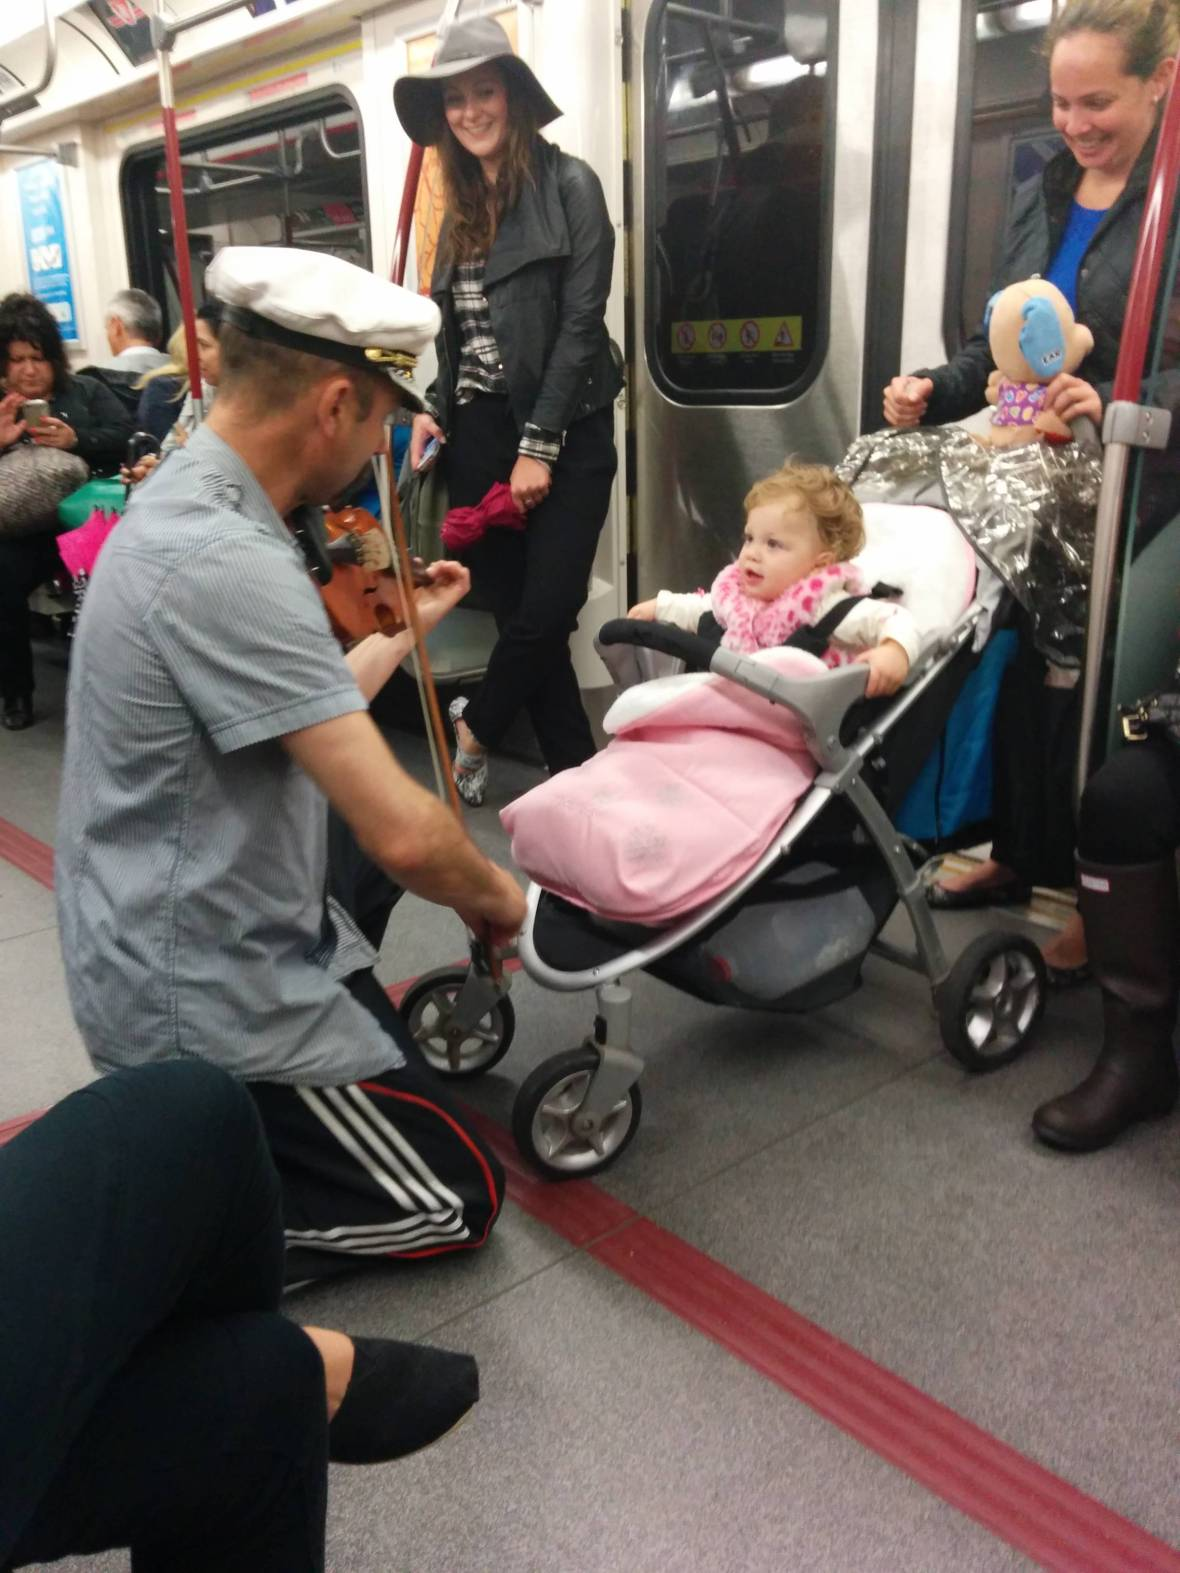 Man spent his subway ride playing his violin for a baby because she was crying